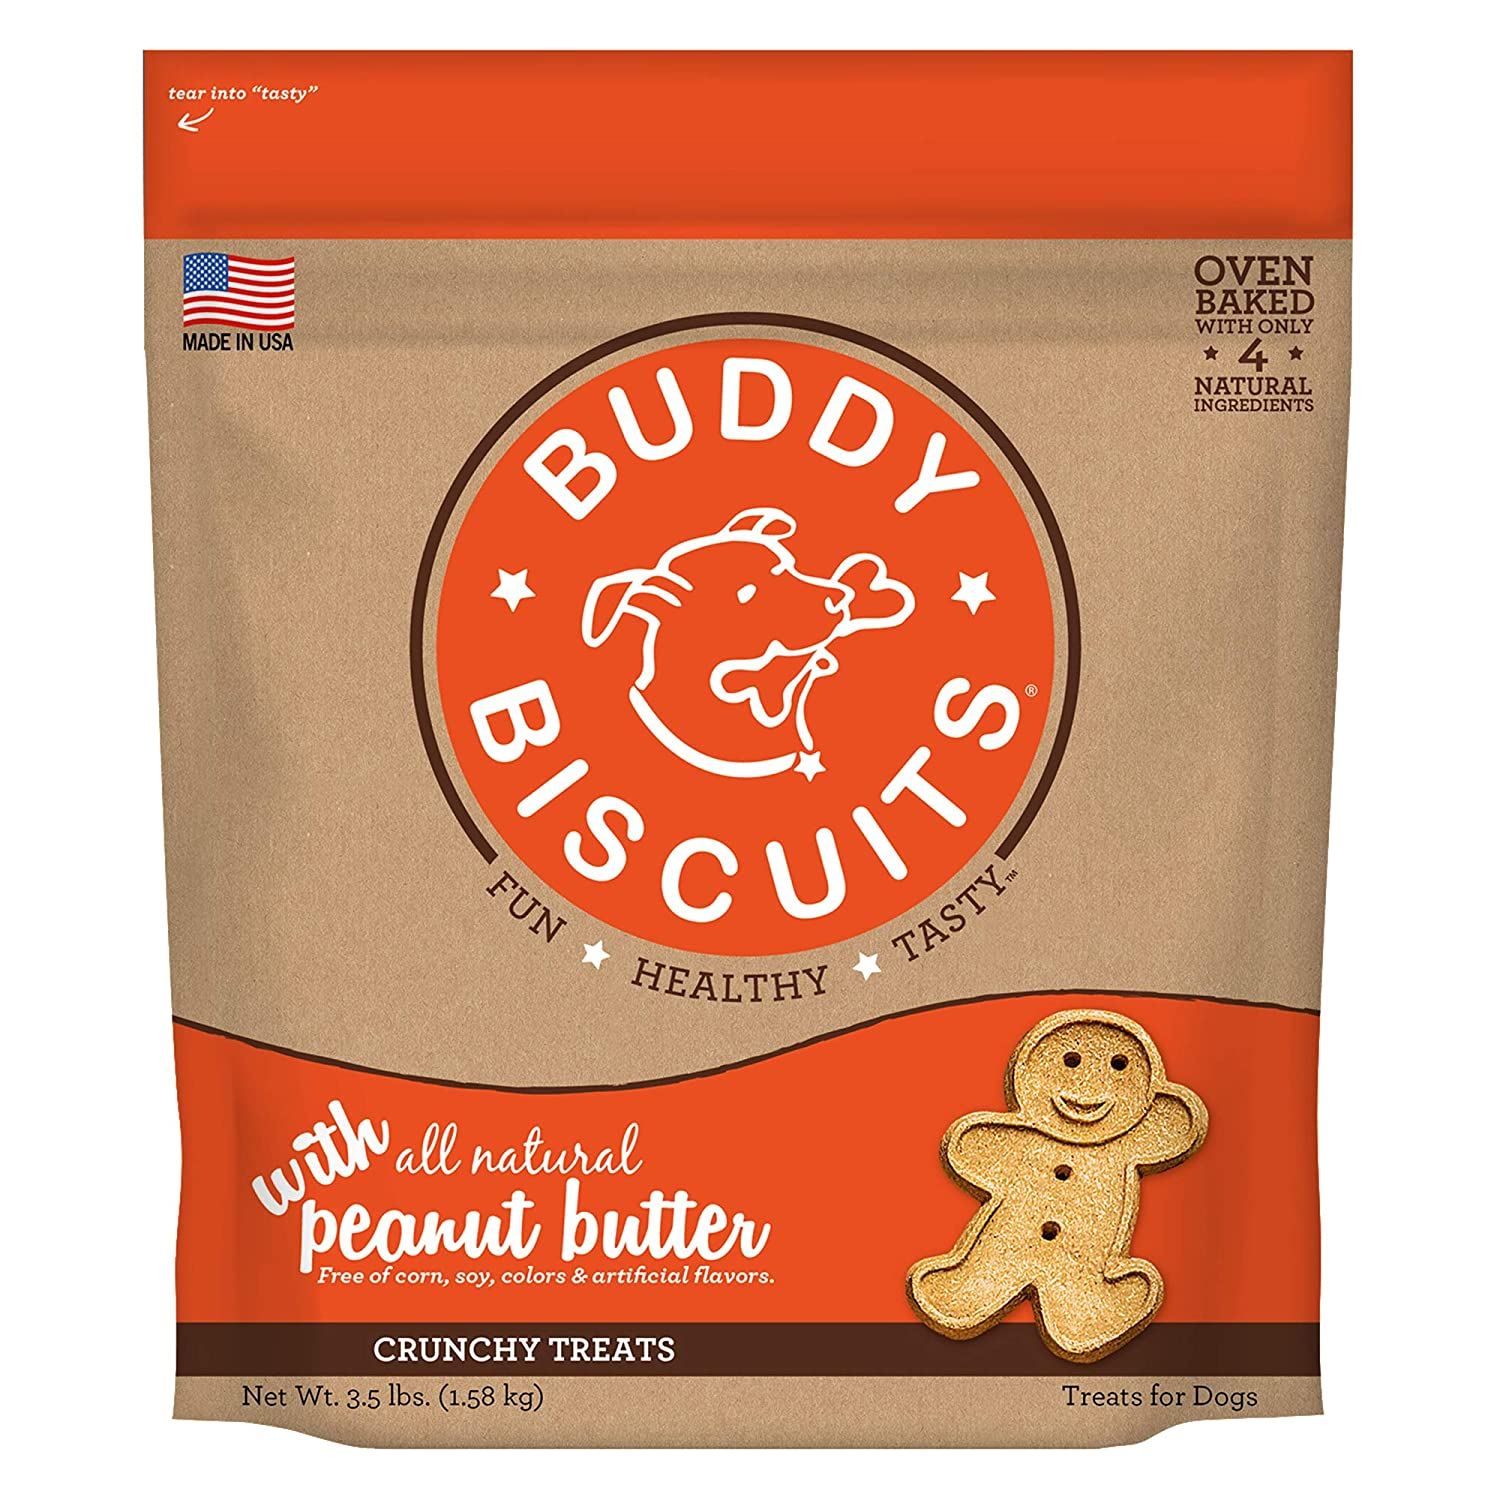 Buddy Biscuits Biscuits Original Oven Baked Treats With Peanut Butter - 3.5 Lb, 1 Piece